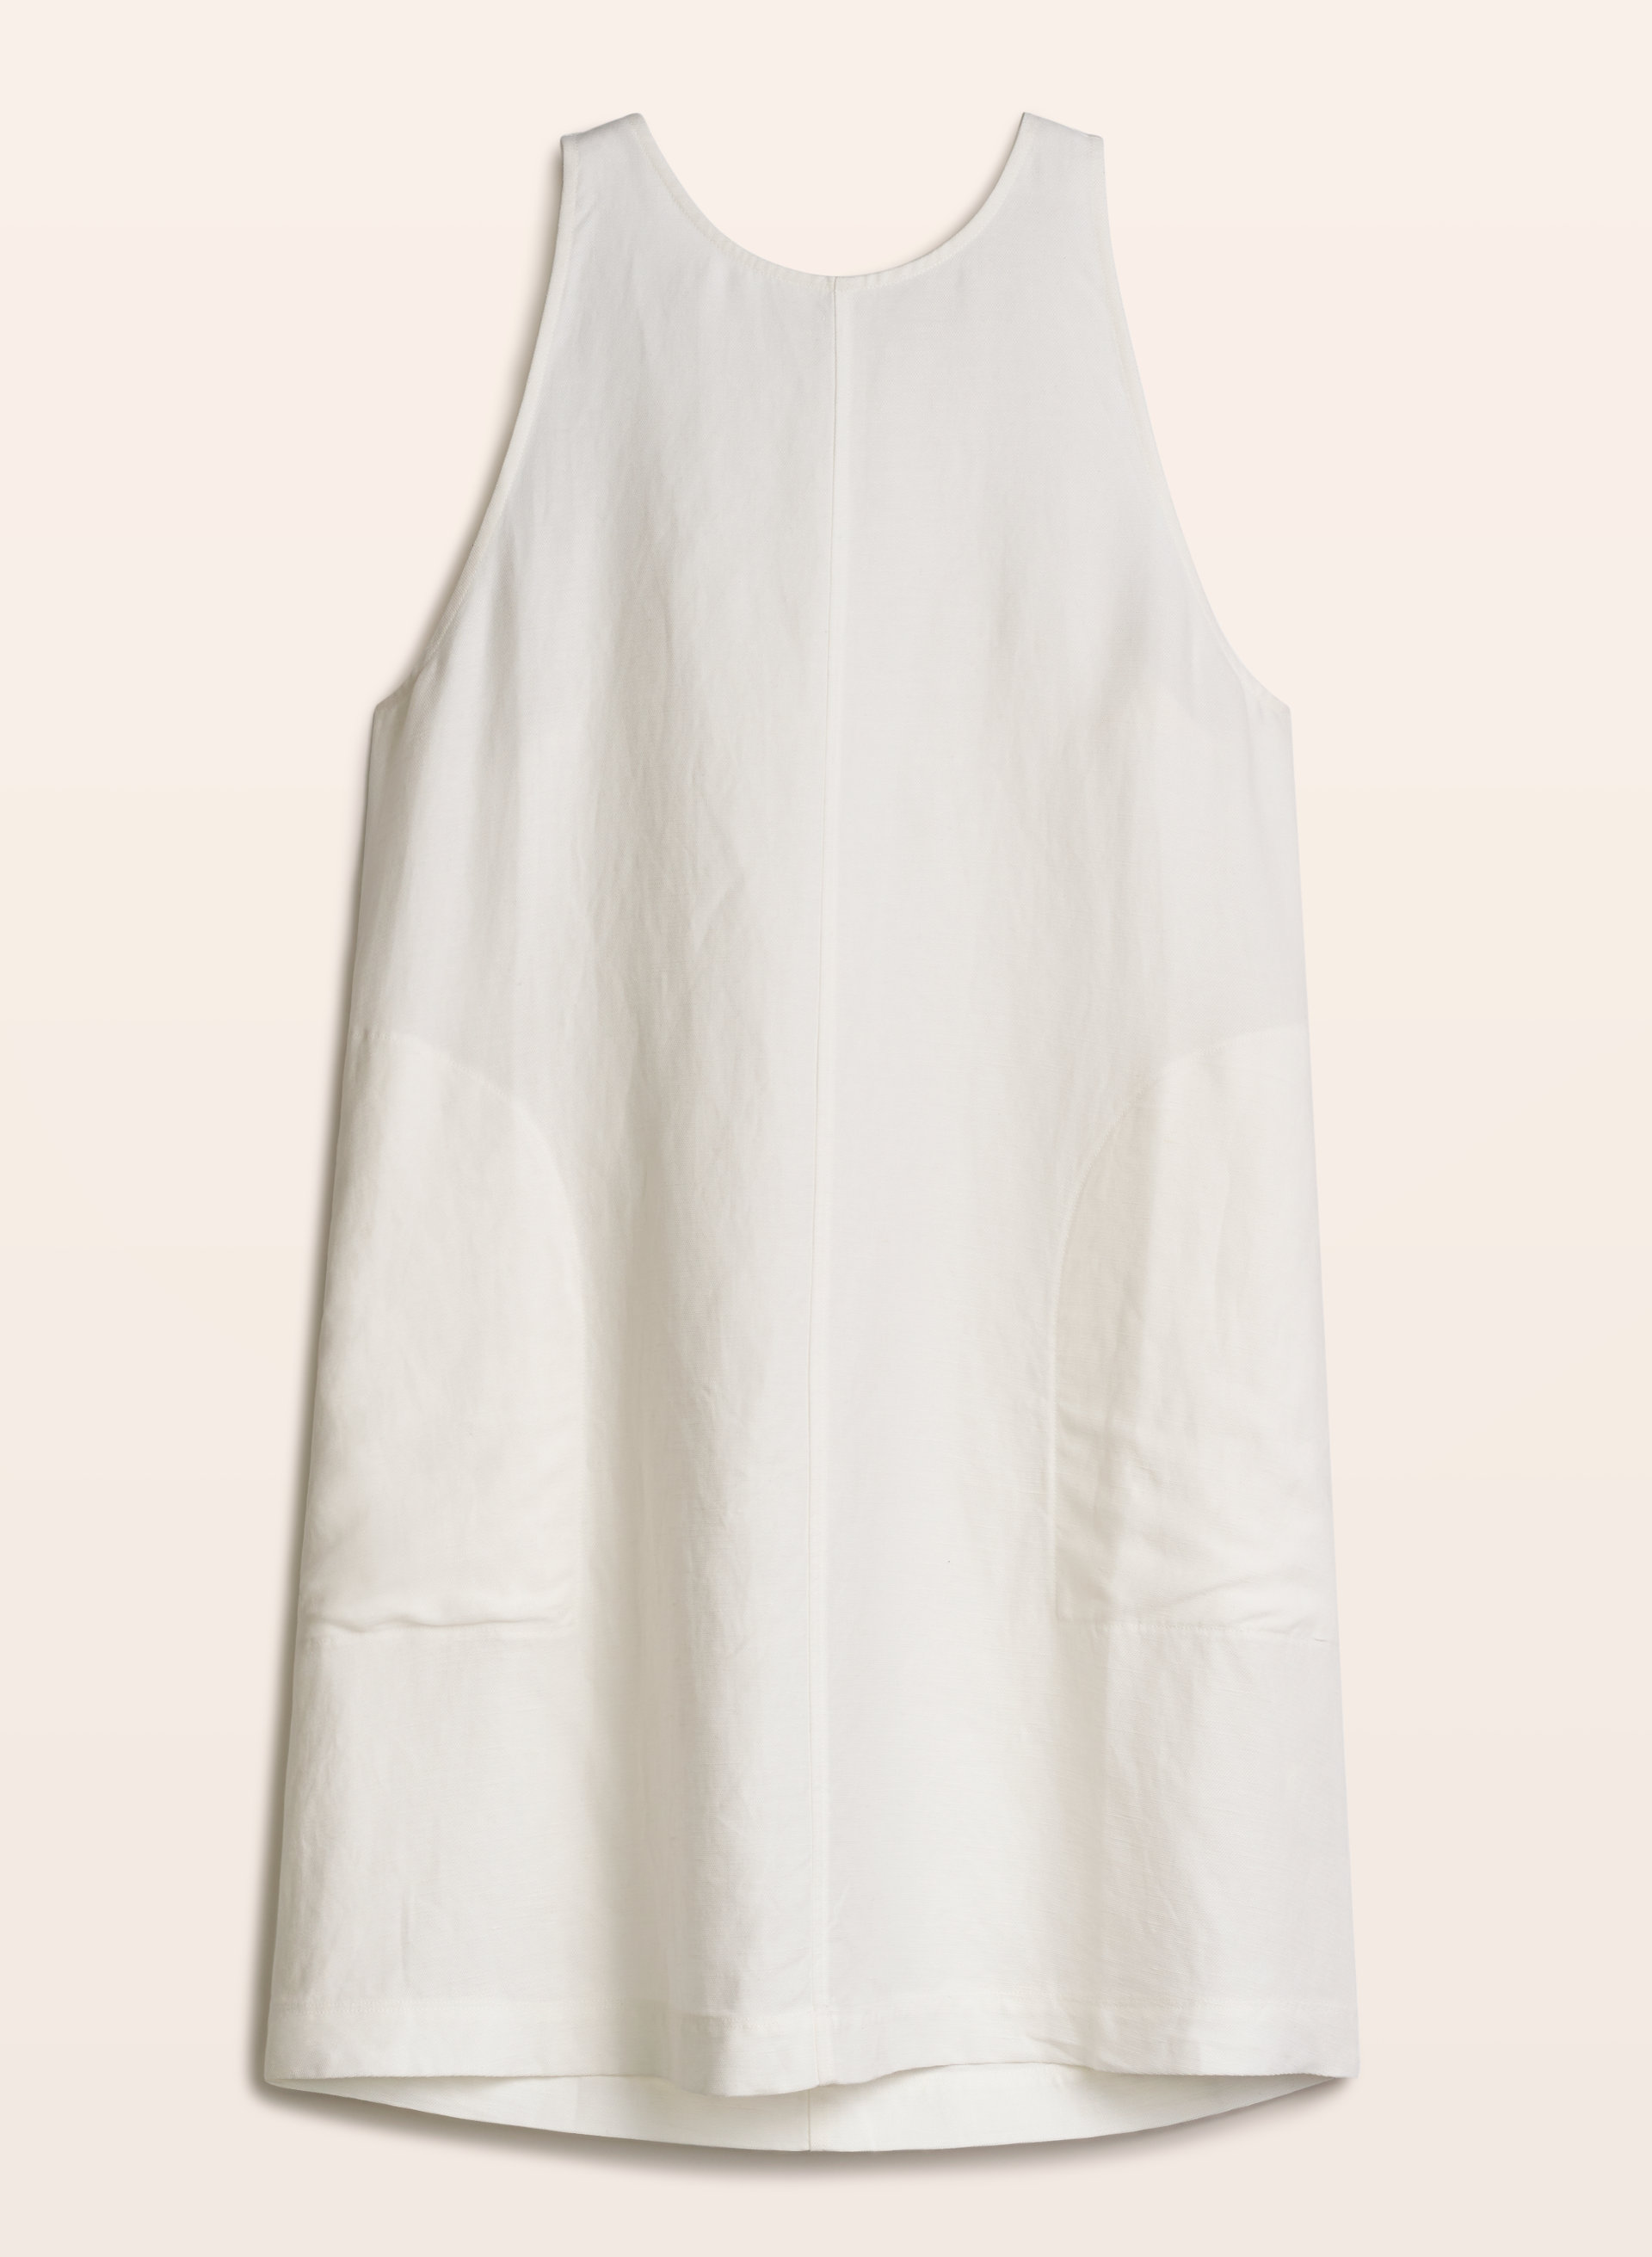 Wilfred trompette dress white.jpg